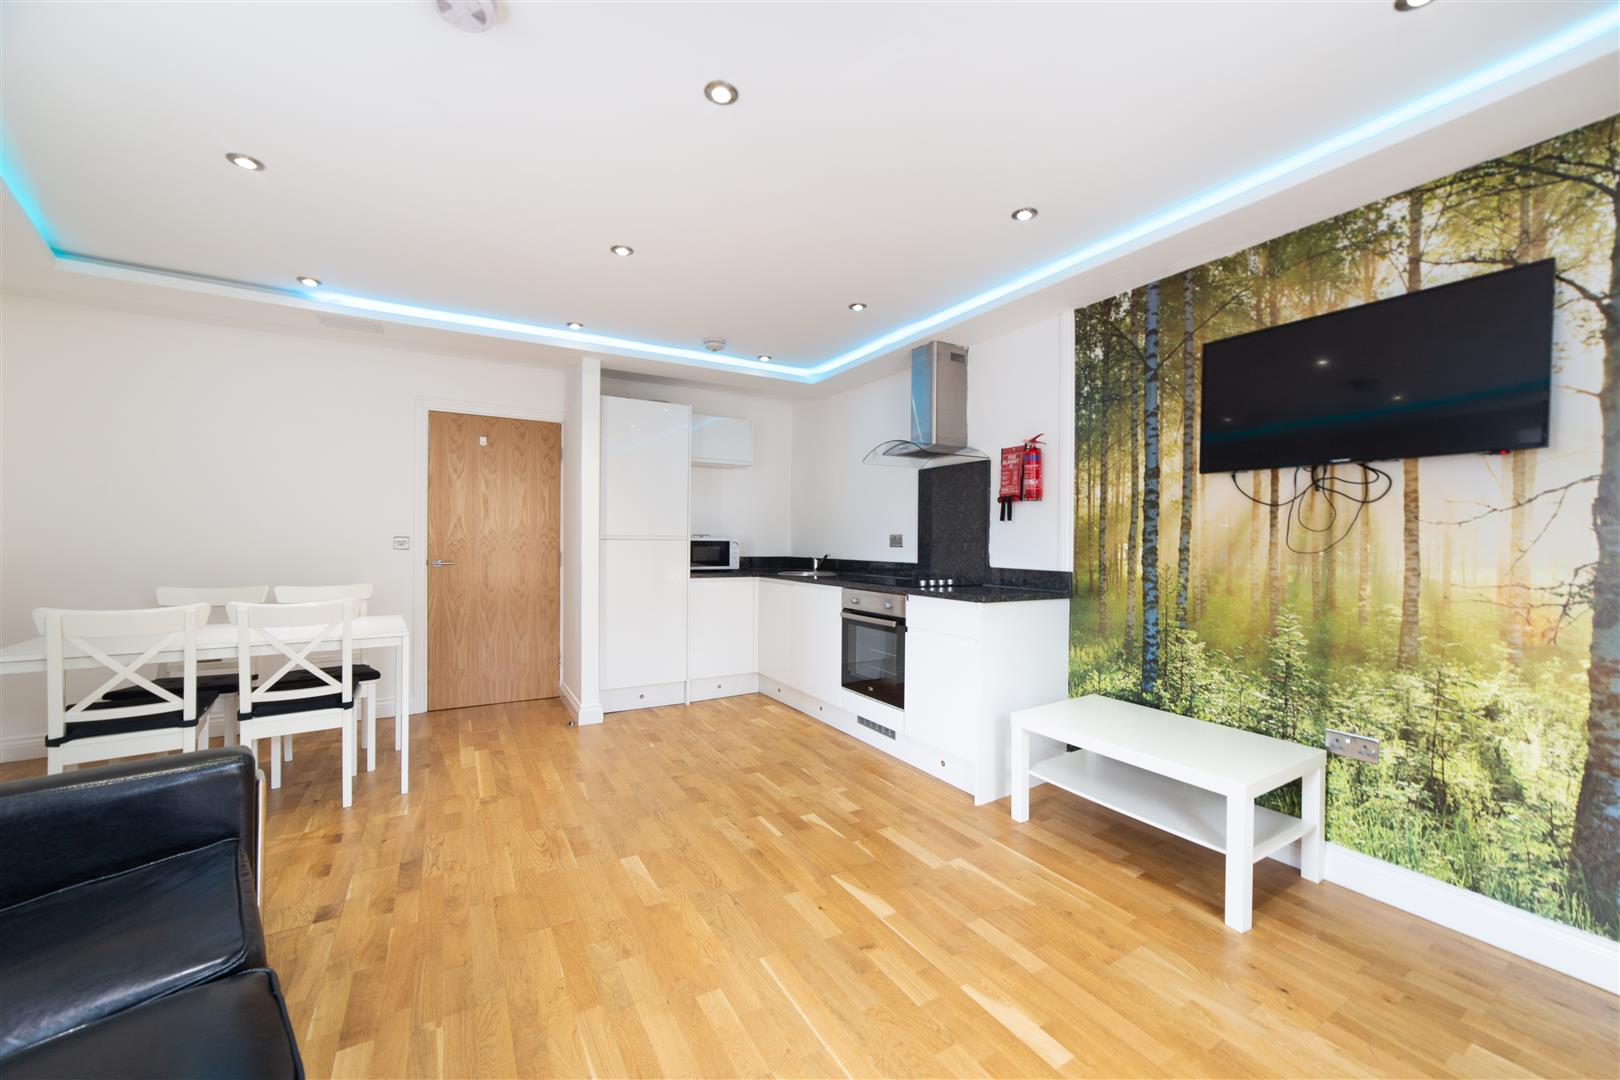 3 bed apartment to rent in Newcastle Upon Tyne, NE1 5AR, NE1